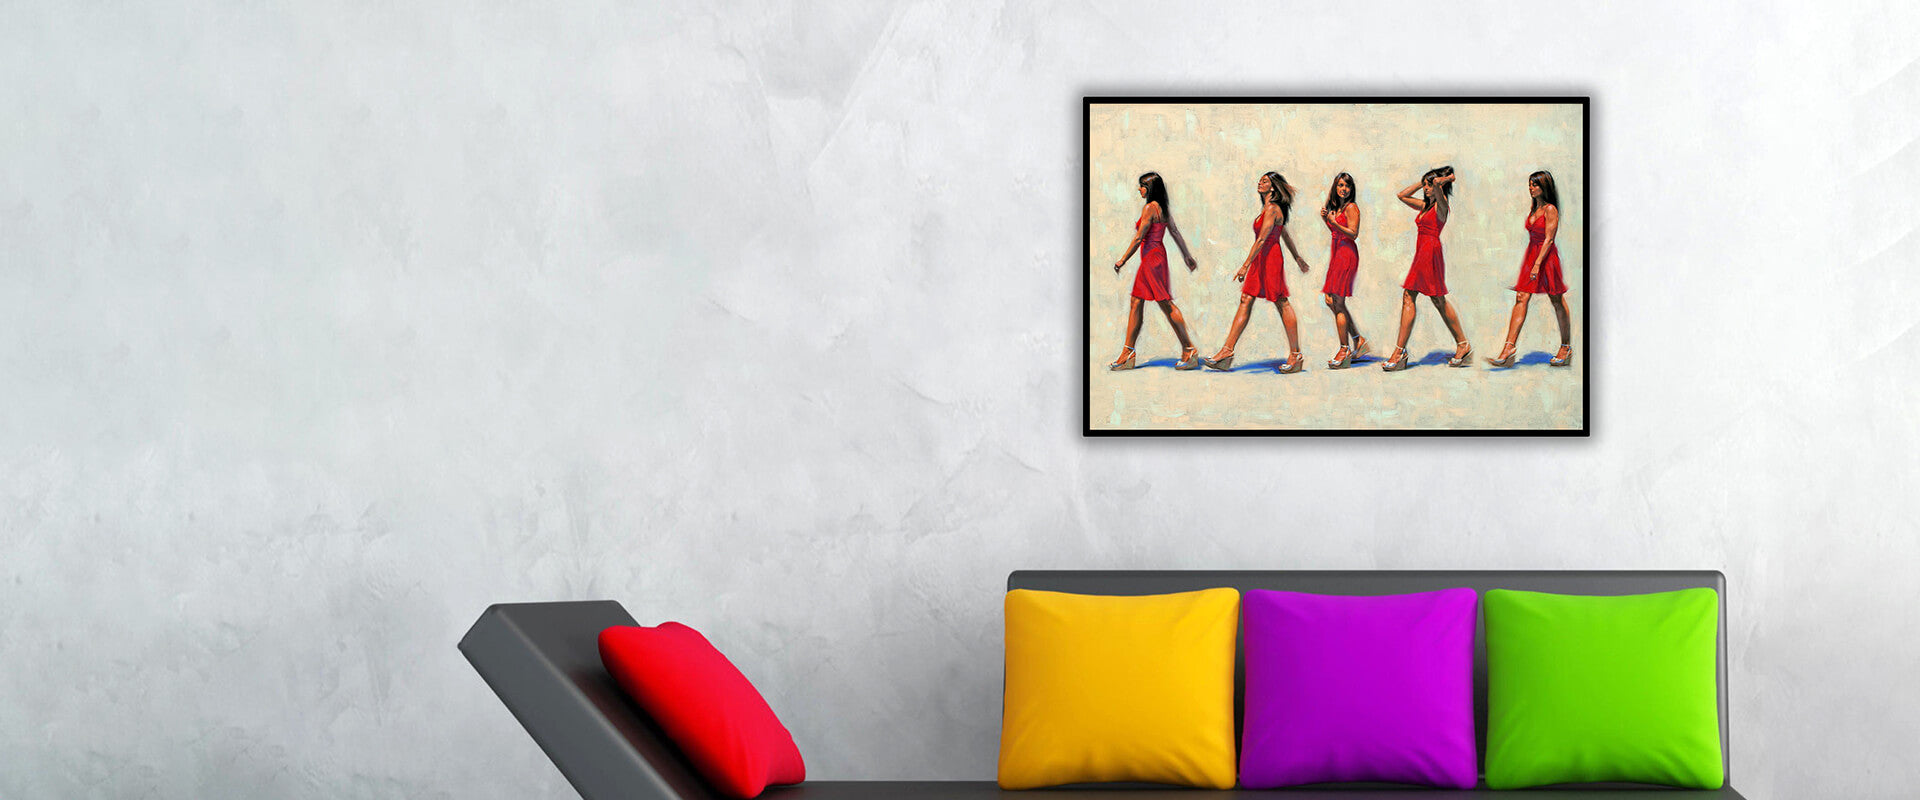 Posters — Contemporary Art | Buy Posters, Frames, Canvas, Digital Art & Large Size Prints